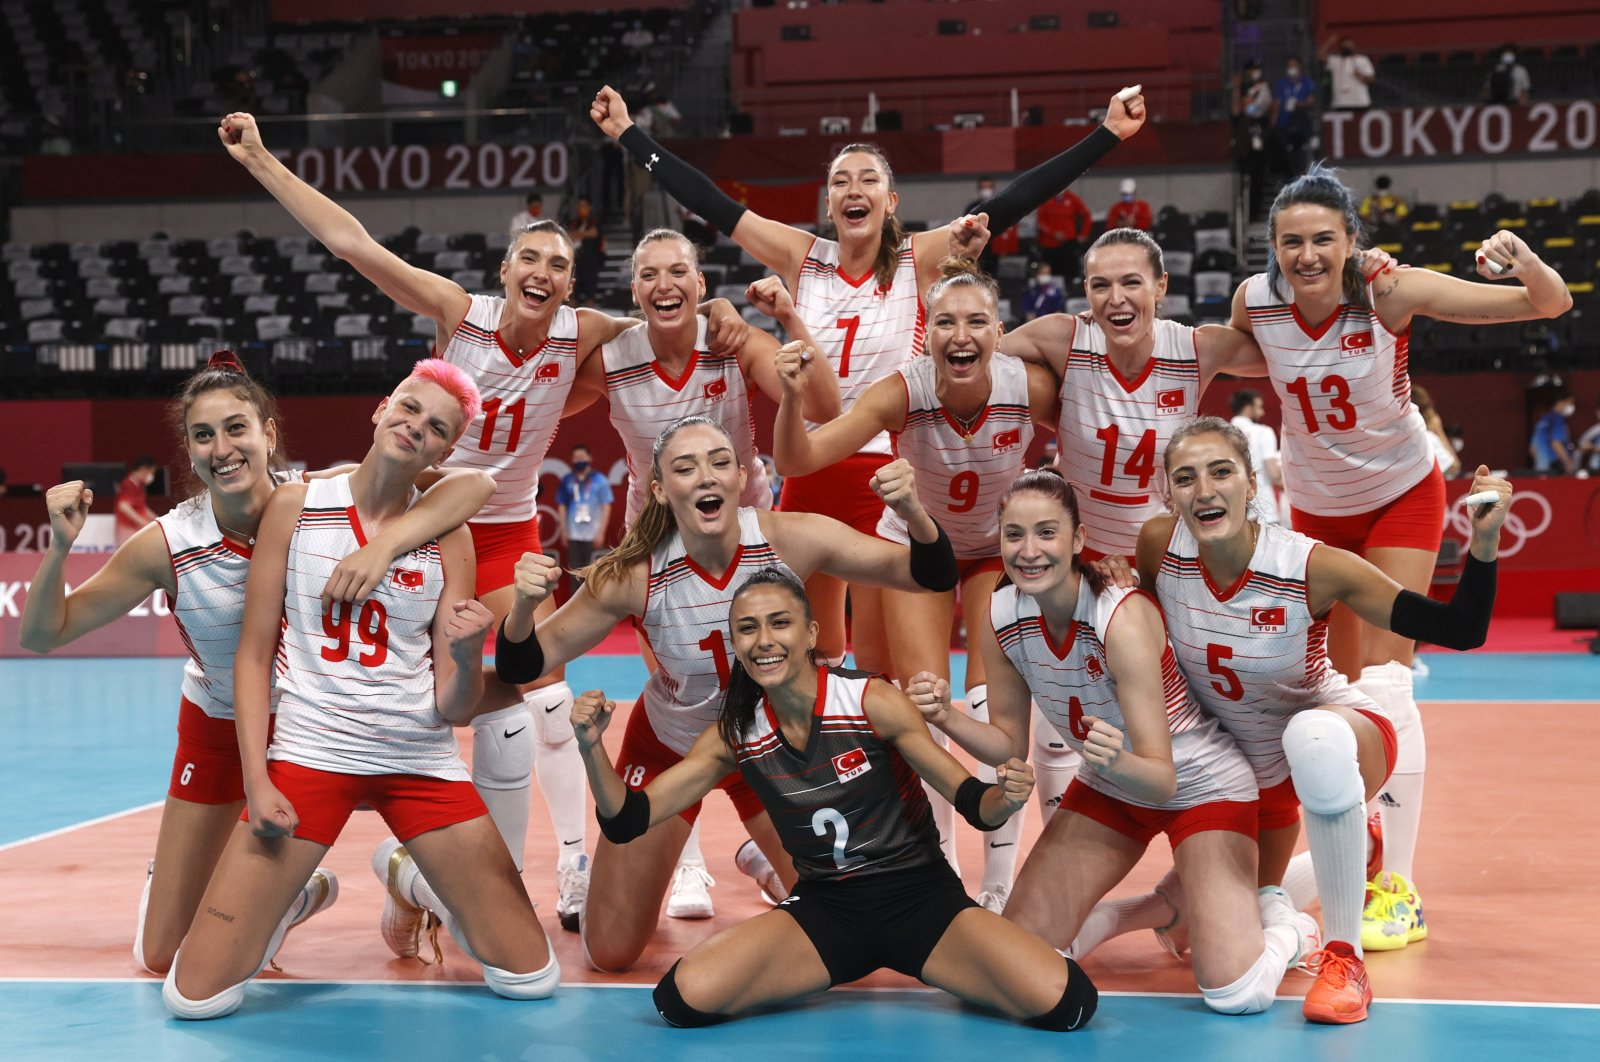 Turkey women's volleyball team celebrates their win against China in Tokyo 2020 Olympics Pool B tie at the Ariake Arena, Tokyo, Japan, July 25, 2021. (Reuters Photo)